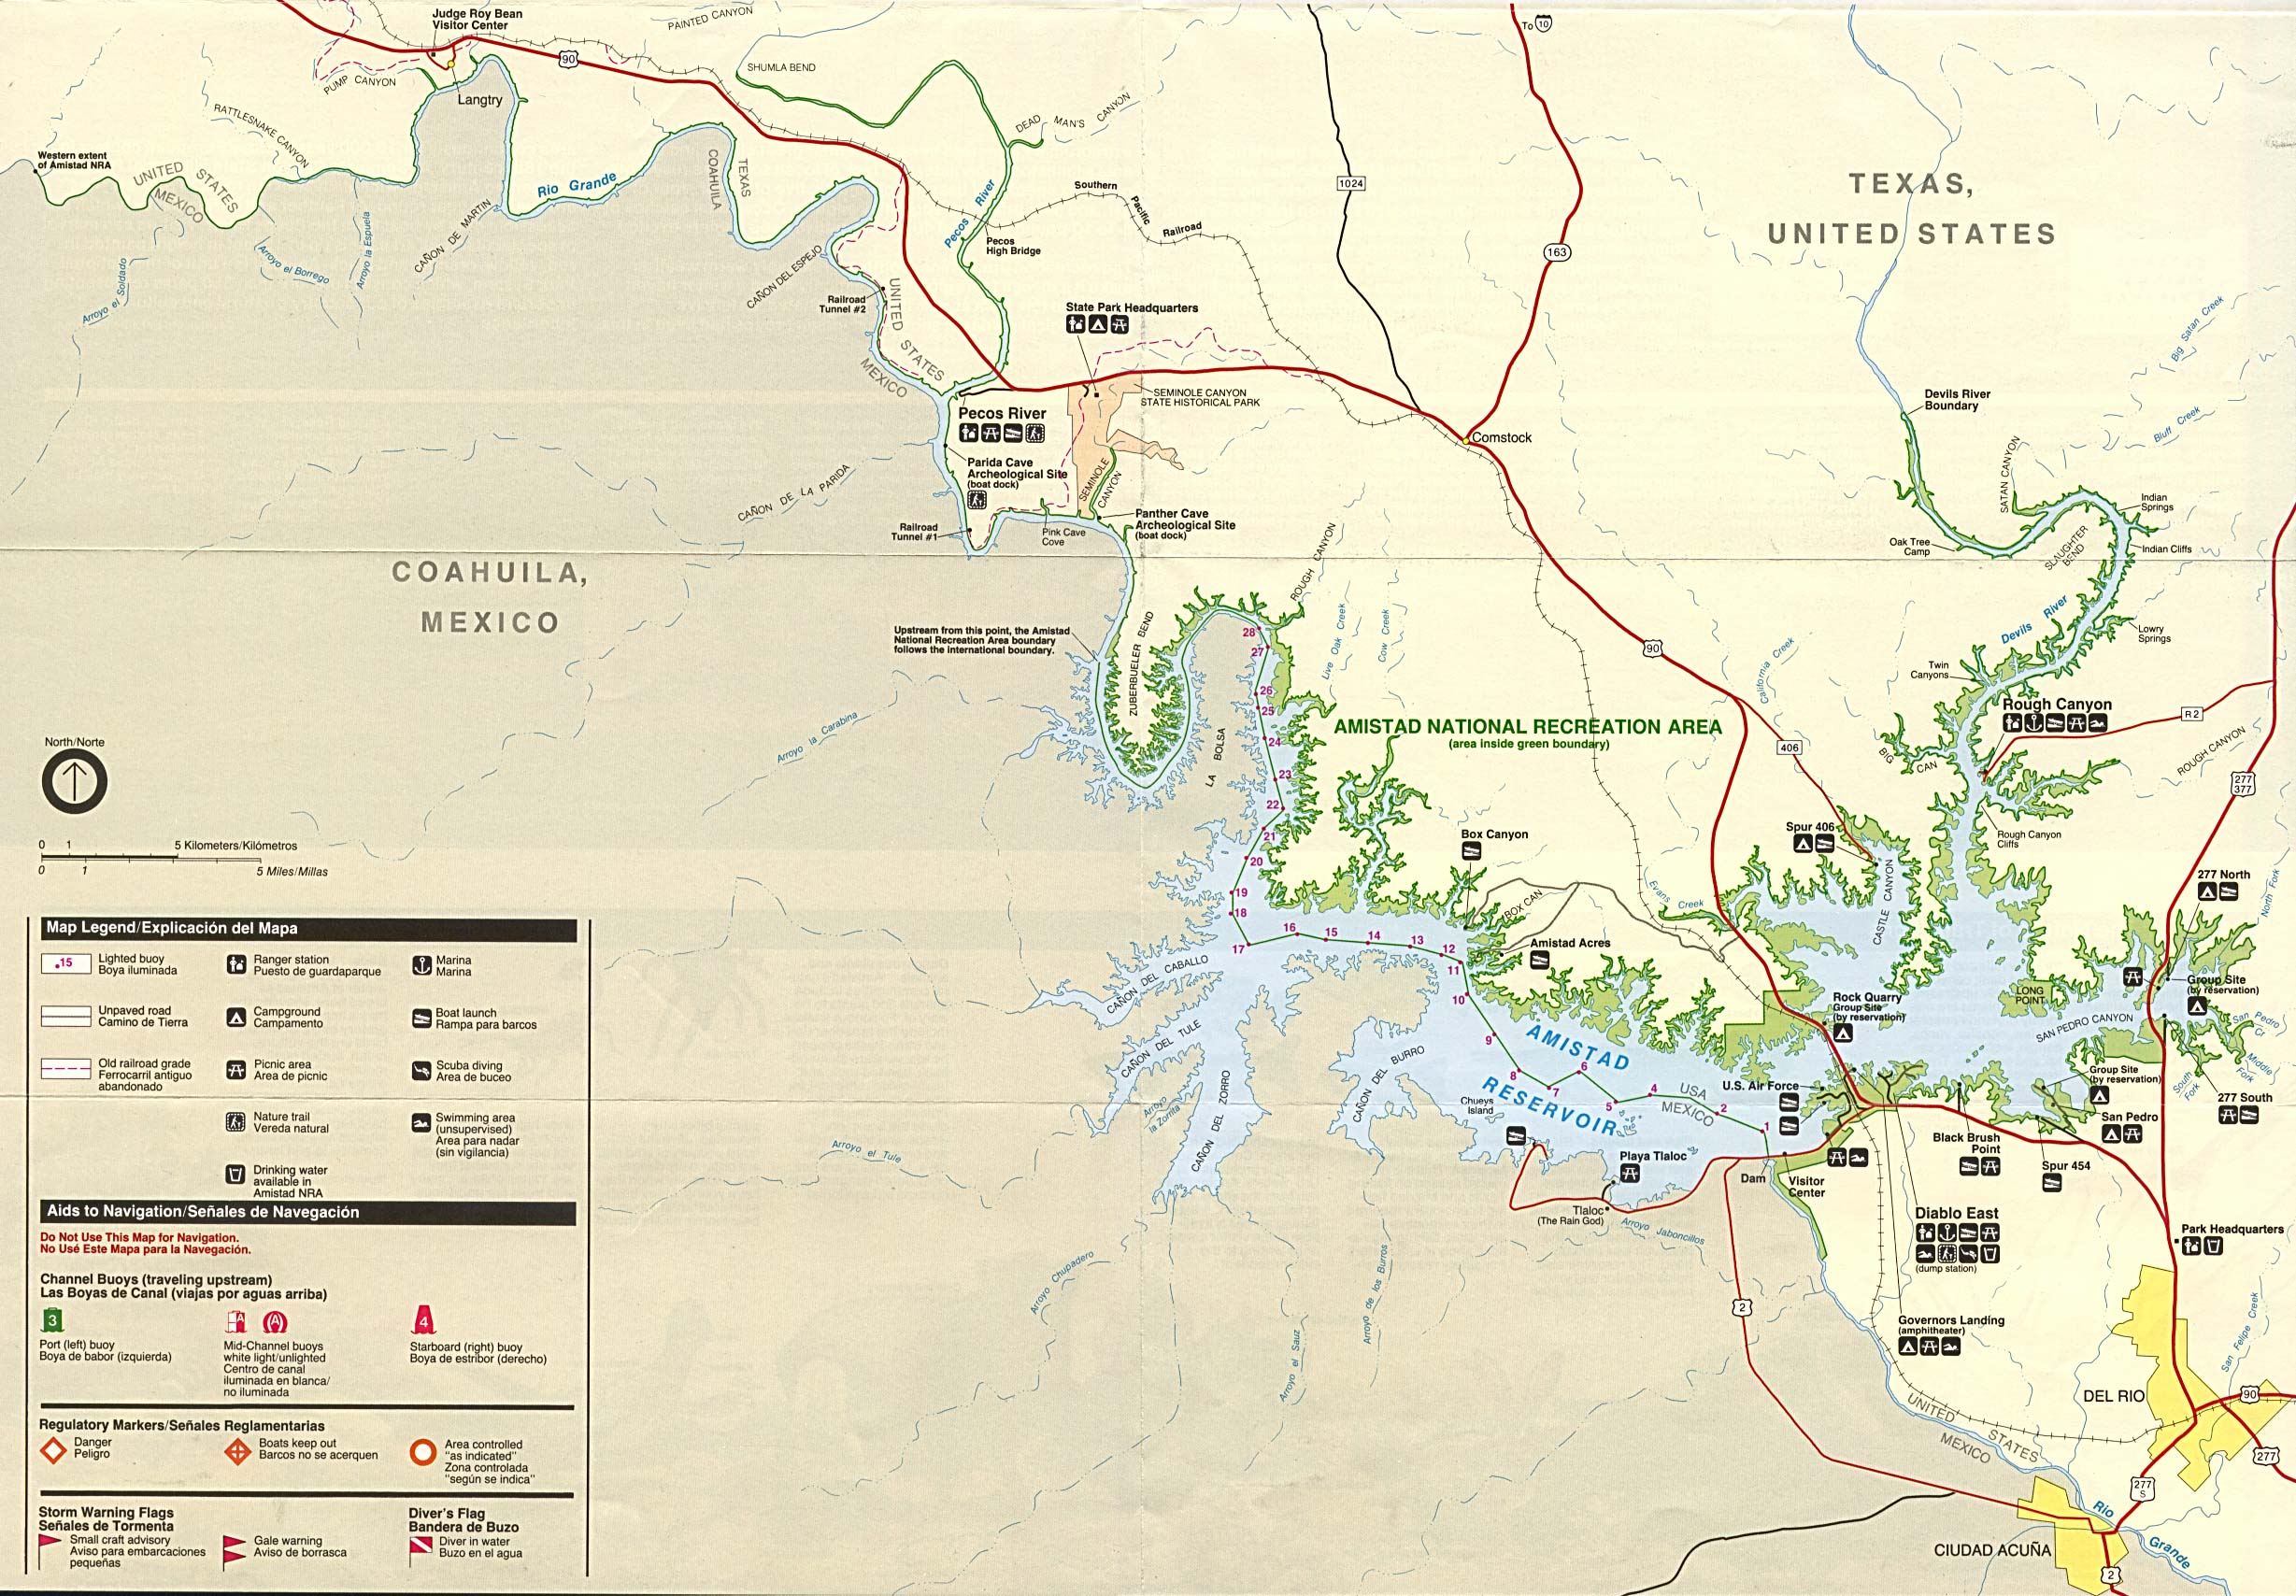 Texas State And National Park Maps - Perry-Castañeda Map Collection - Texas Hunting Map